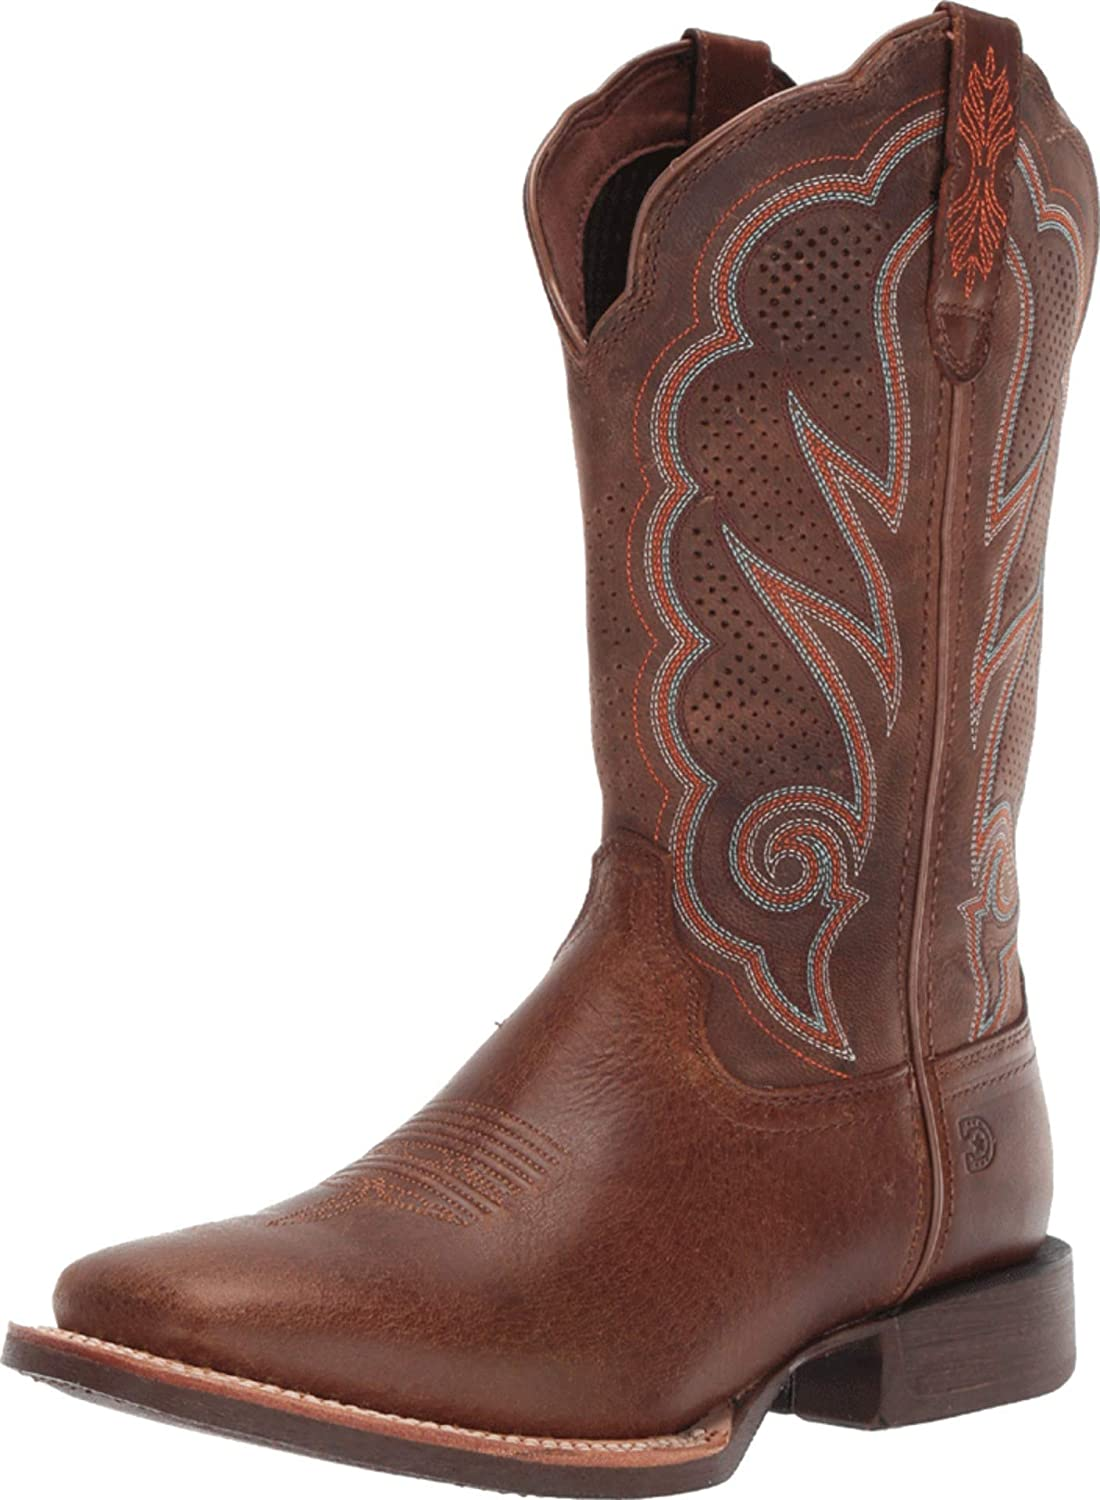 Durango Lady Rebel Very popular Pro Limited time for free shipping Women's Boot Cognac Ventilated Western